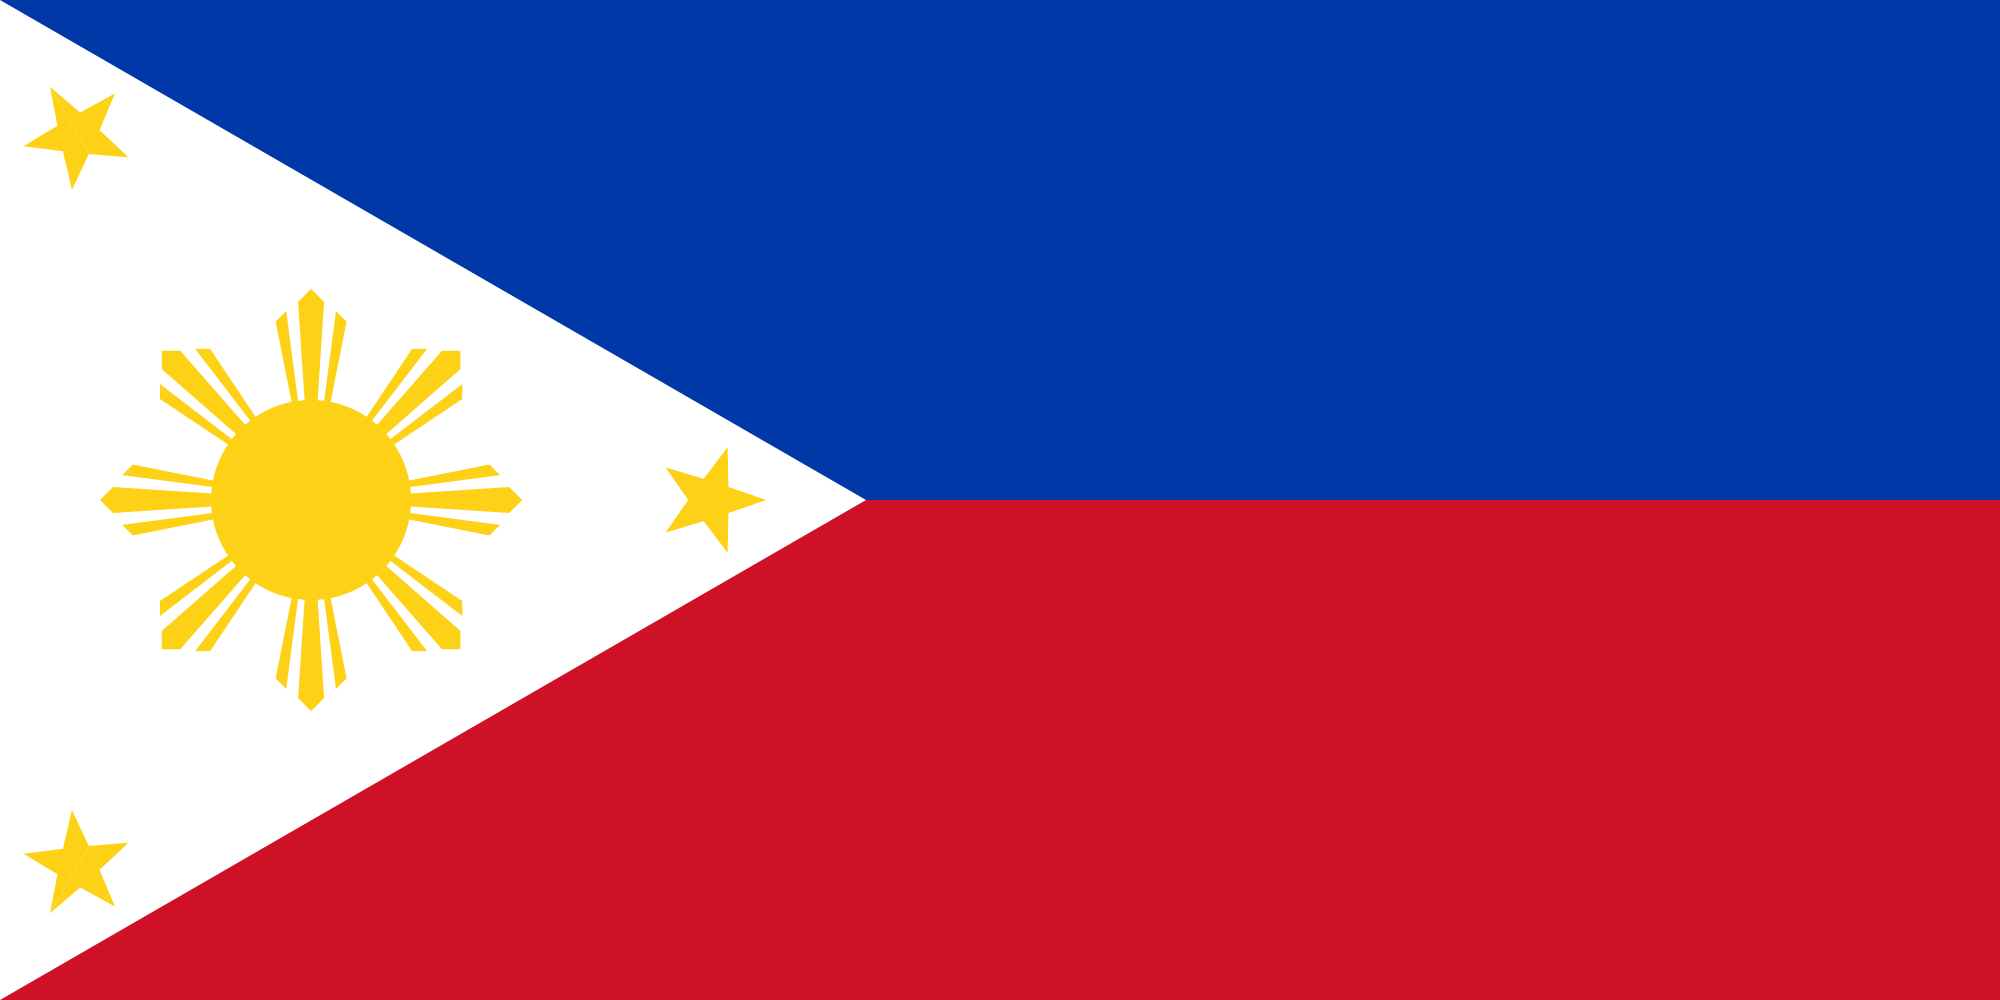 File:Flag of the Philippines.svg Wikipedia